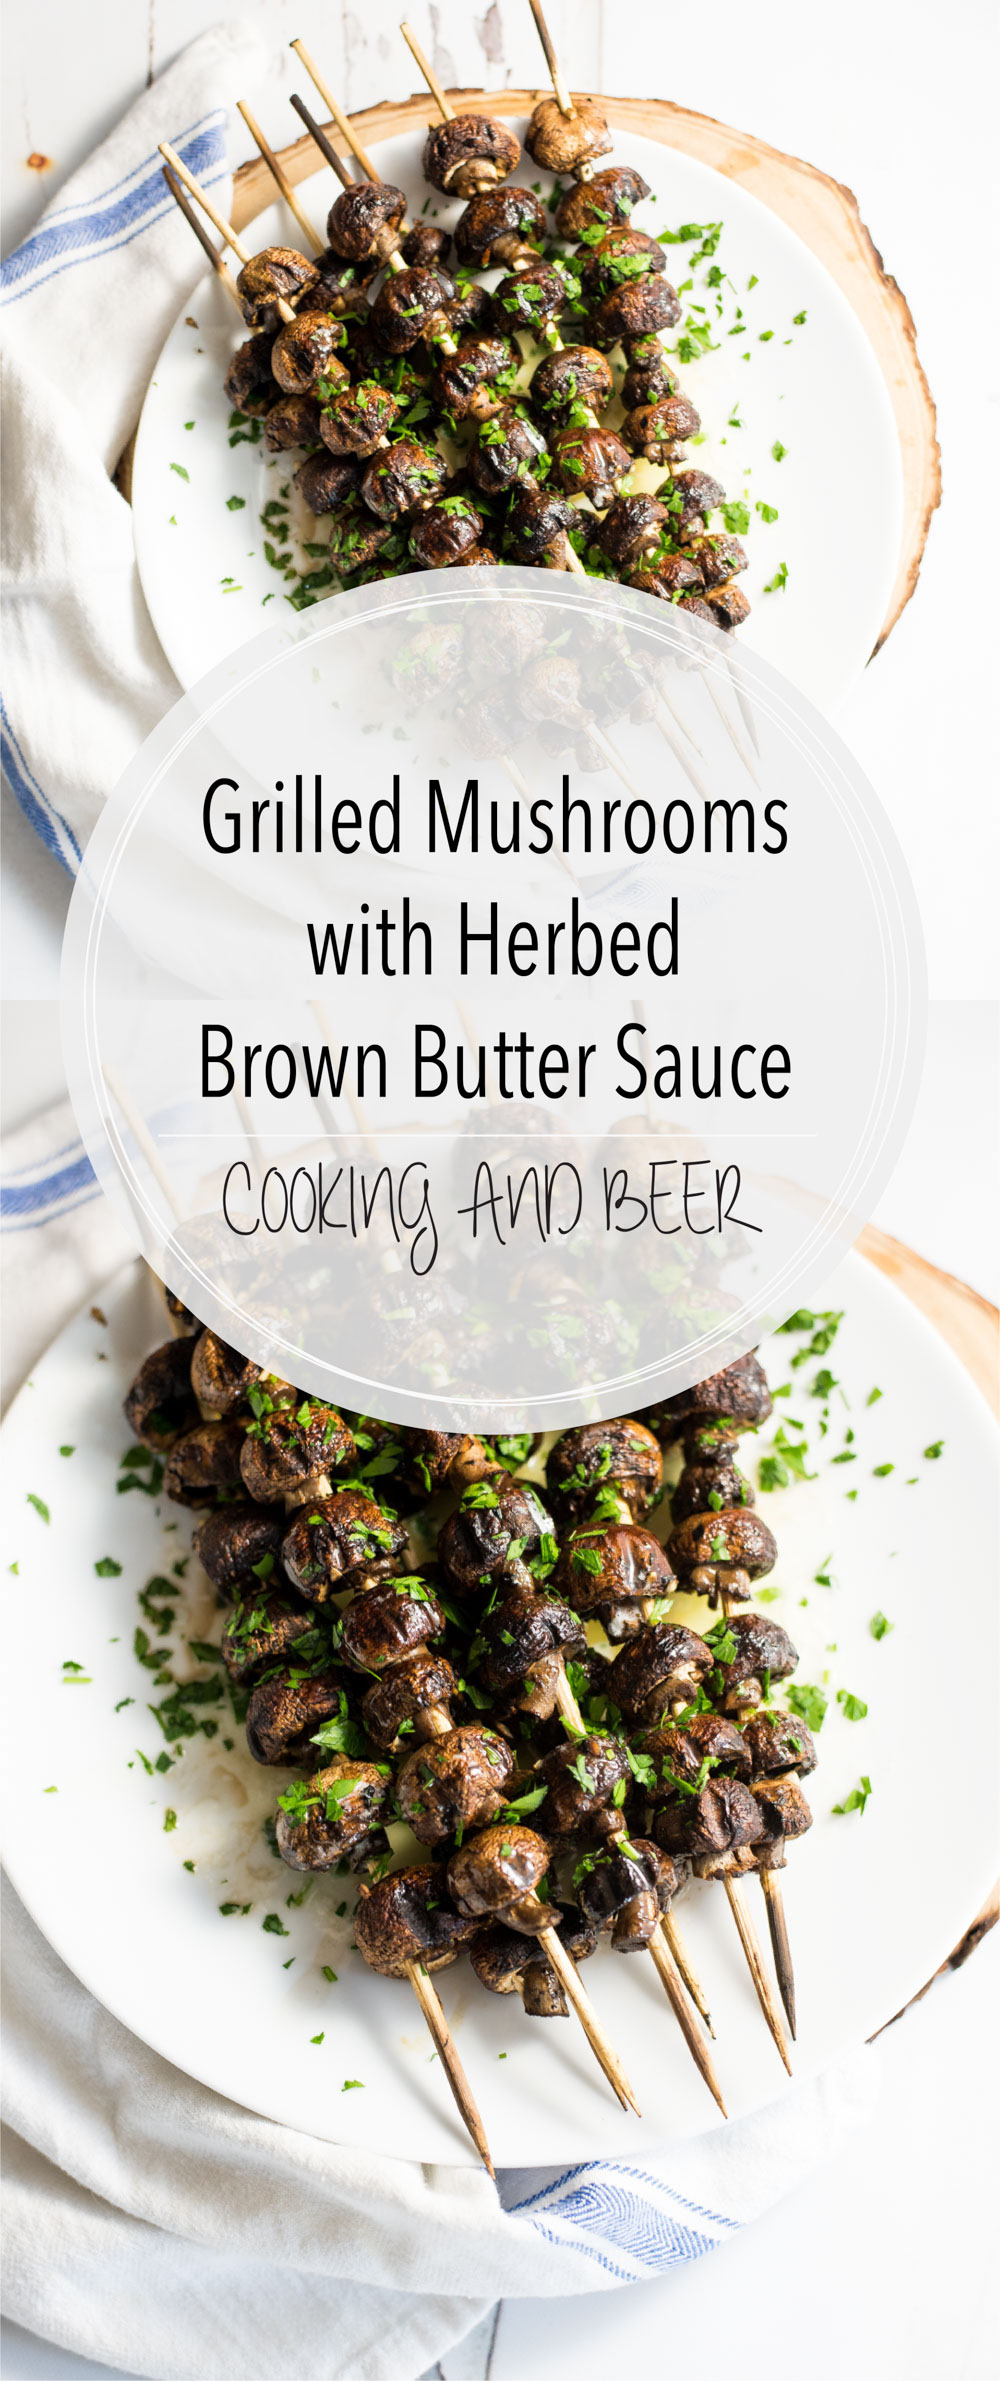 These grilled mushrooms with herbed brown butter sauce are the perfect side dish for that barbecue chicken and macaroni and cheese!